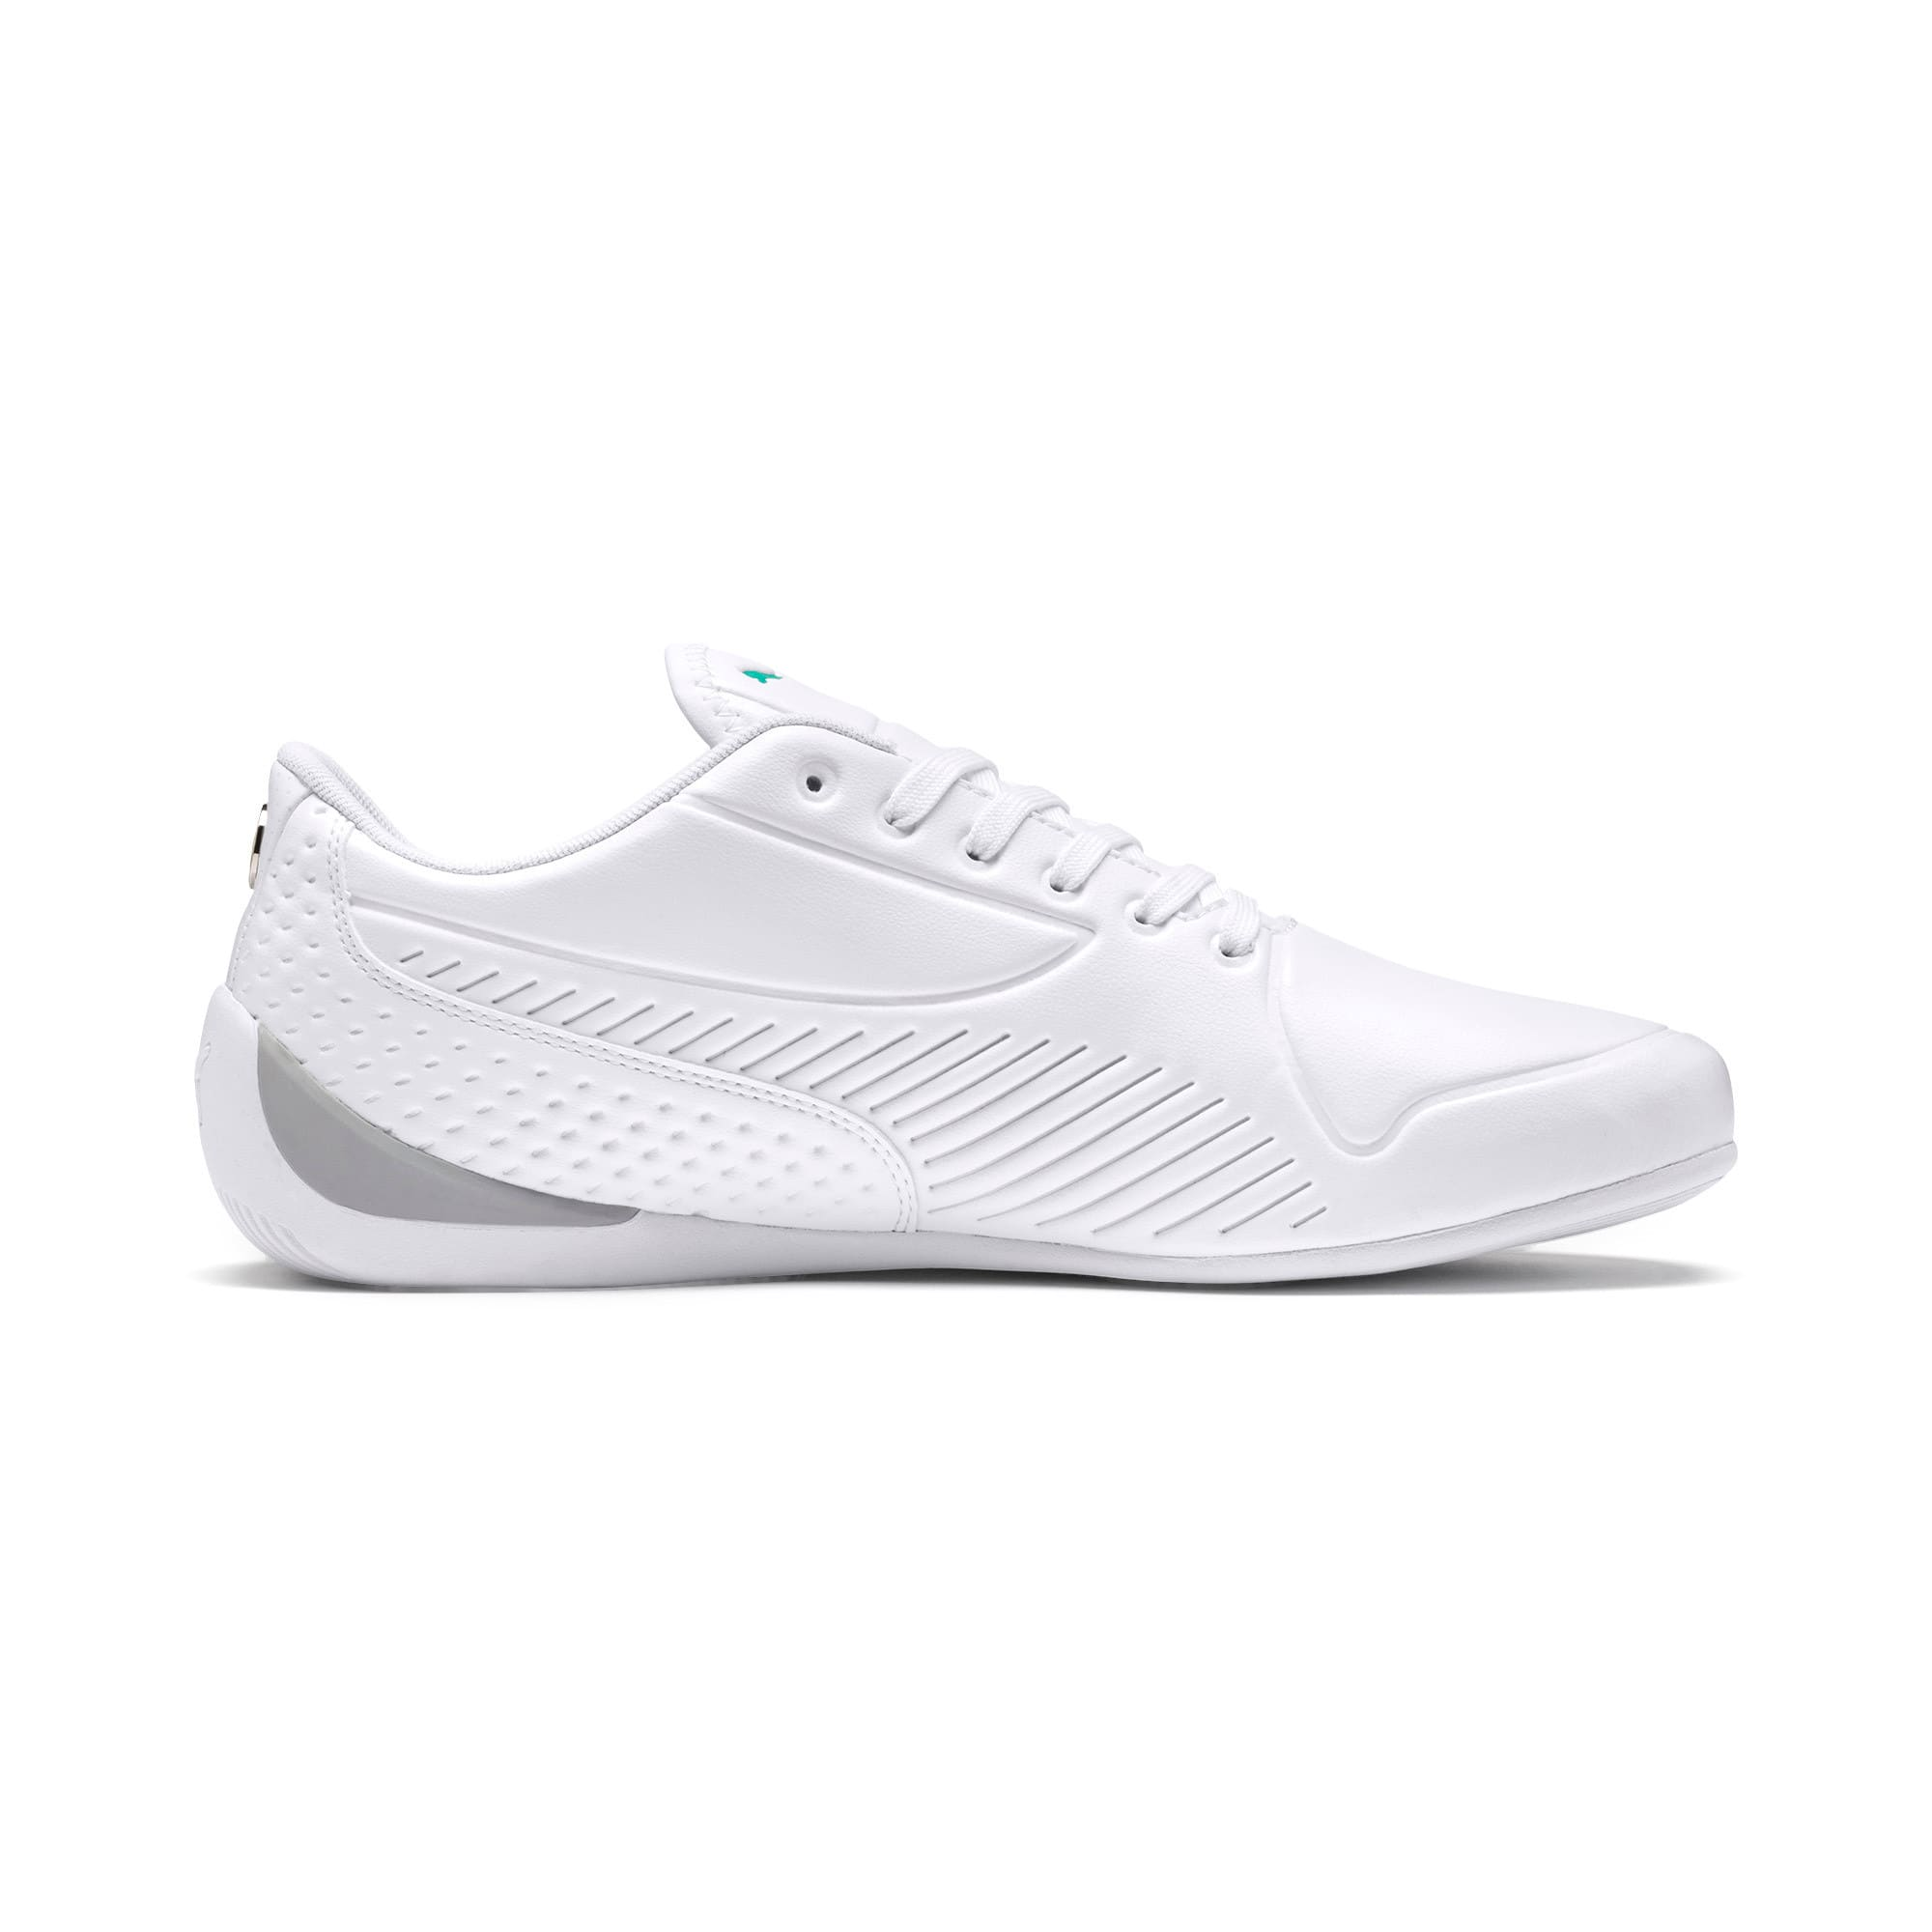 Thumbnail 6 of Mercedes AMG Petronas Drift Cat 7S Ultra Men's Shoes, Puma White-Puma White, medium